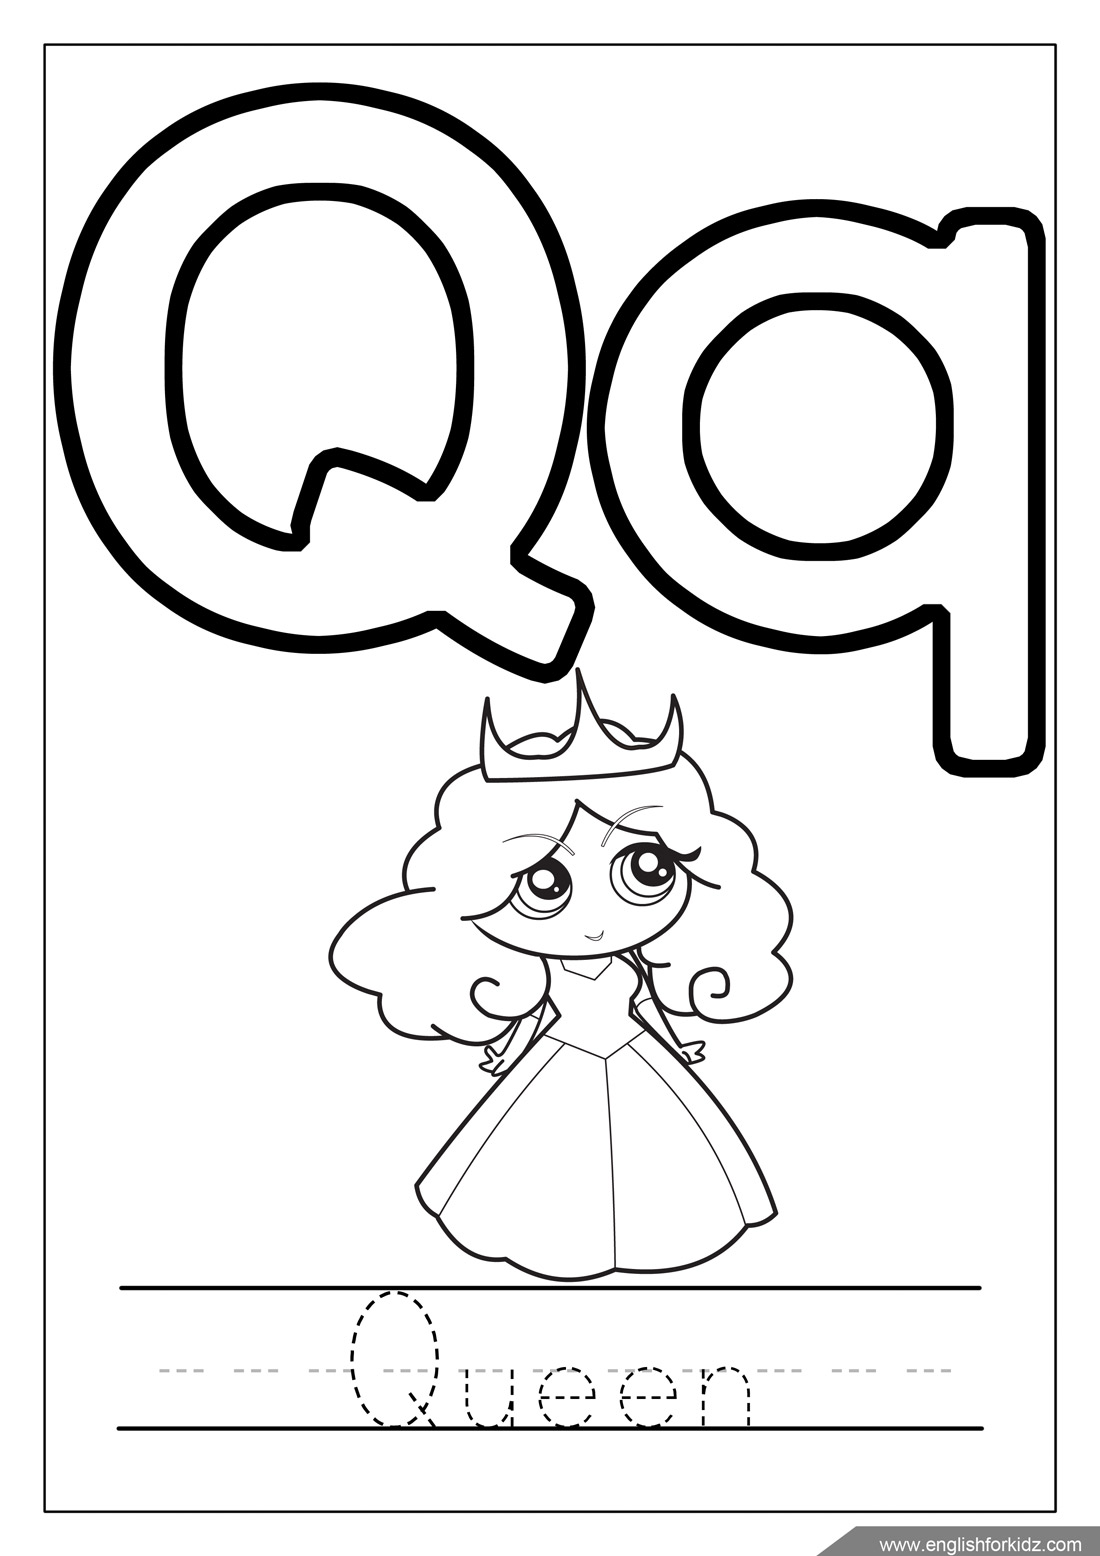 coloring sheet alphabet coloring pages alphabet coloring pages letters k t alphabet pages coloring sheet coloring